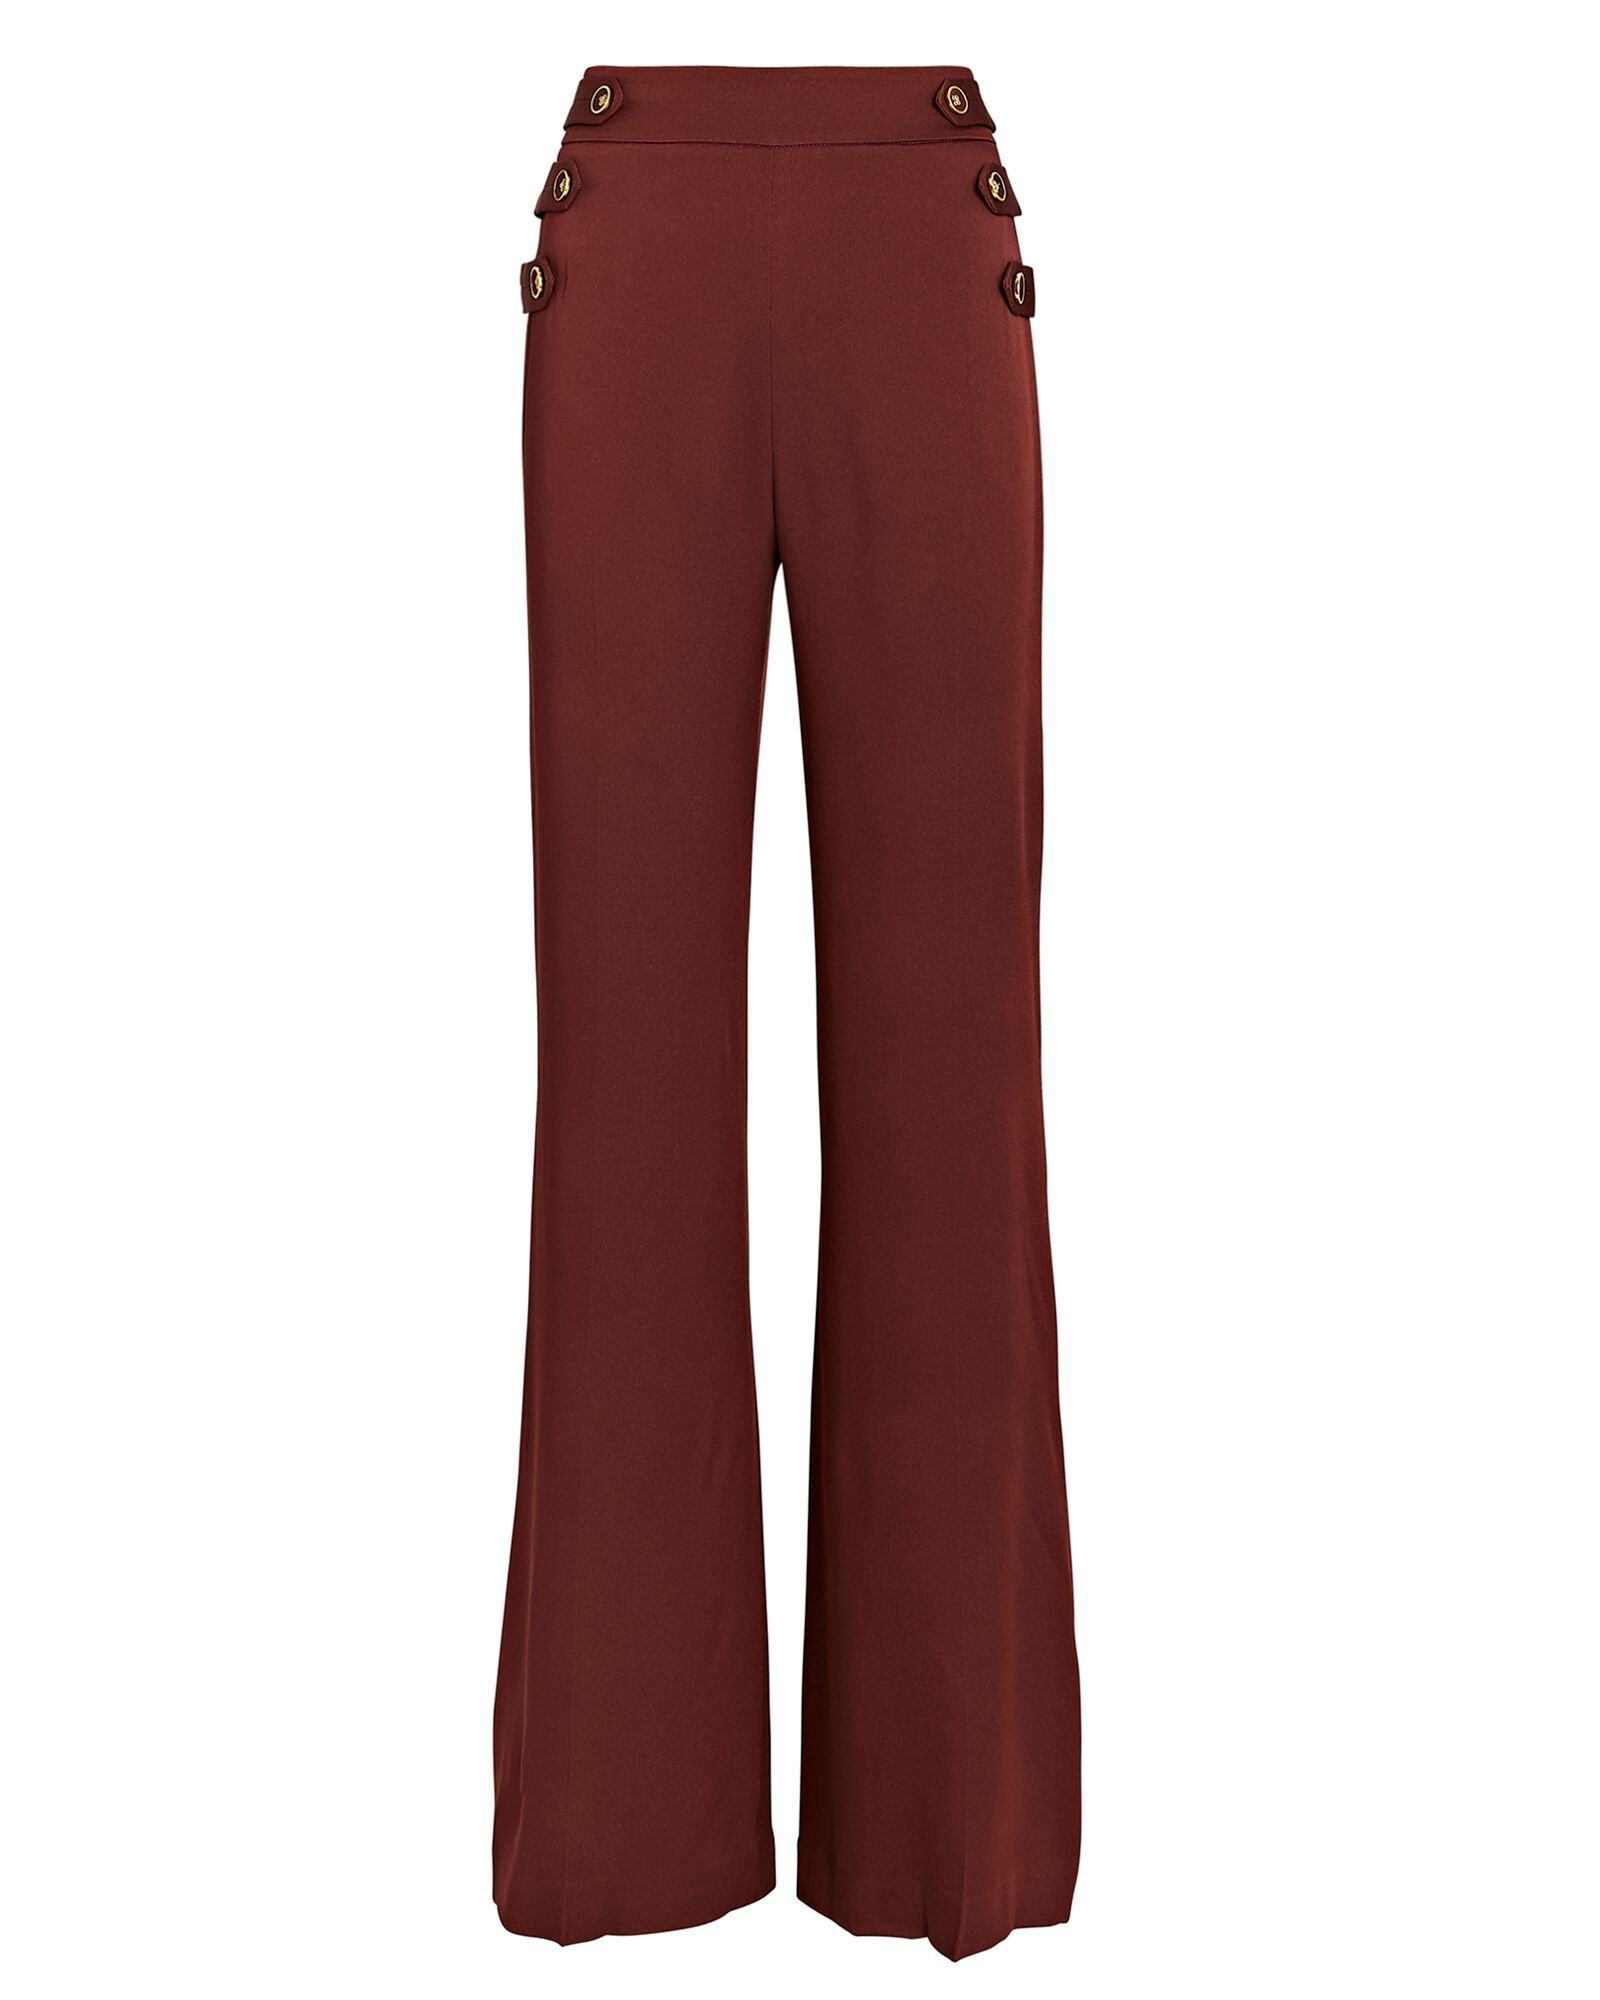 Romily Buttoned Flare Pants, ORANGE, hi-res